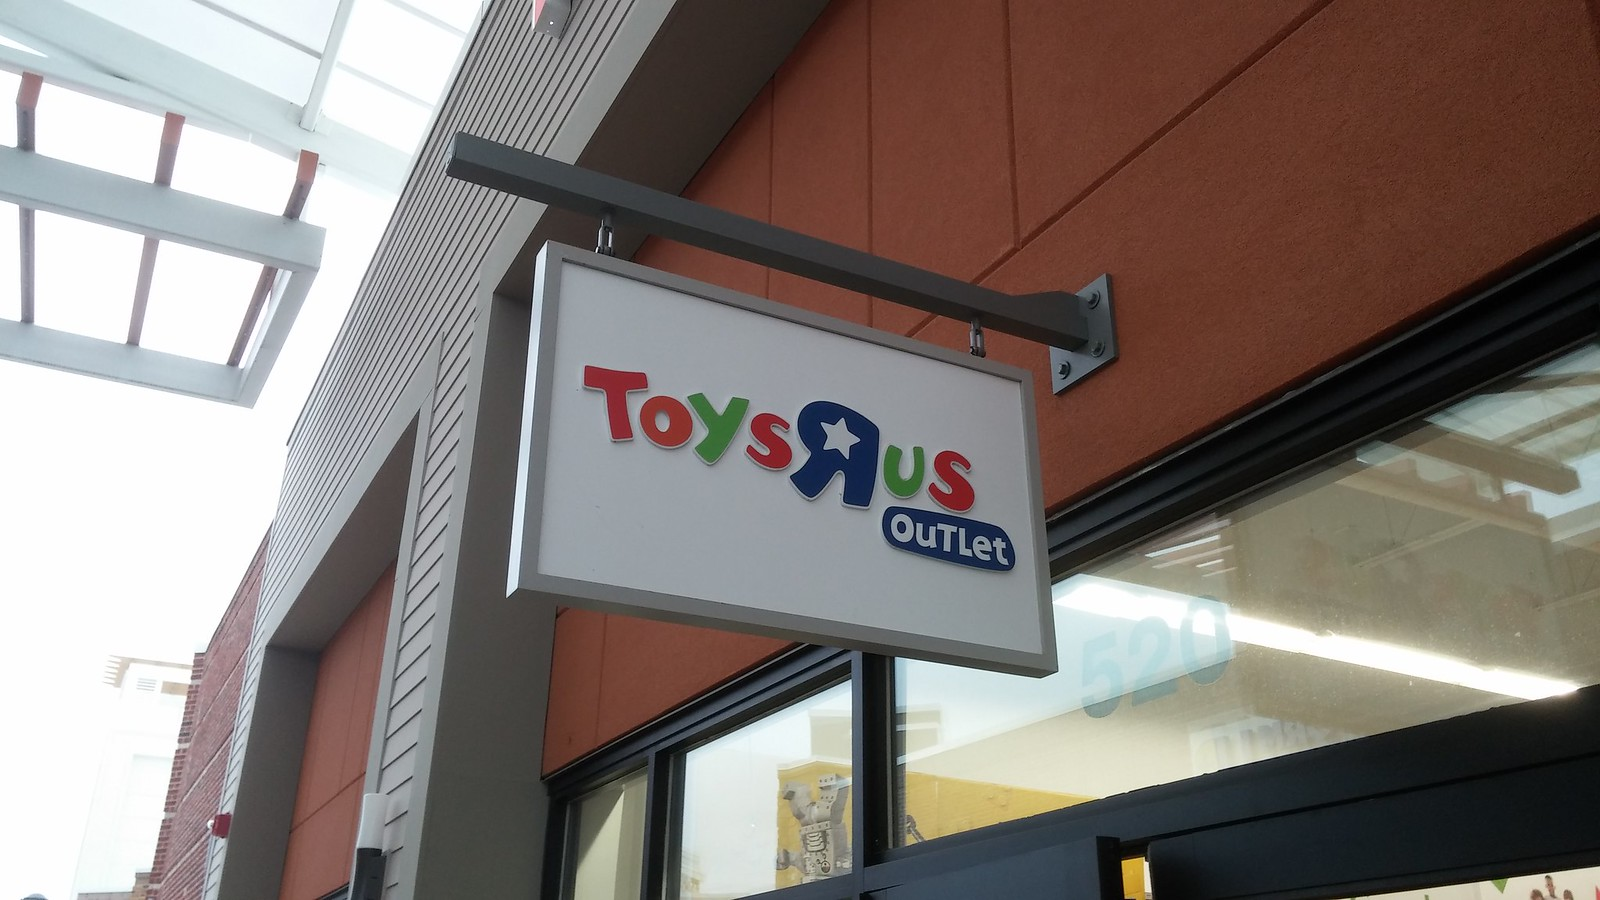 Toys R Us Outlet Closing Tanger Southaven Ms Flickr